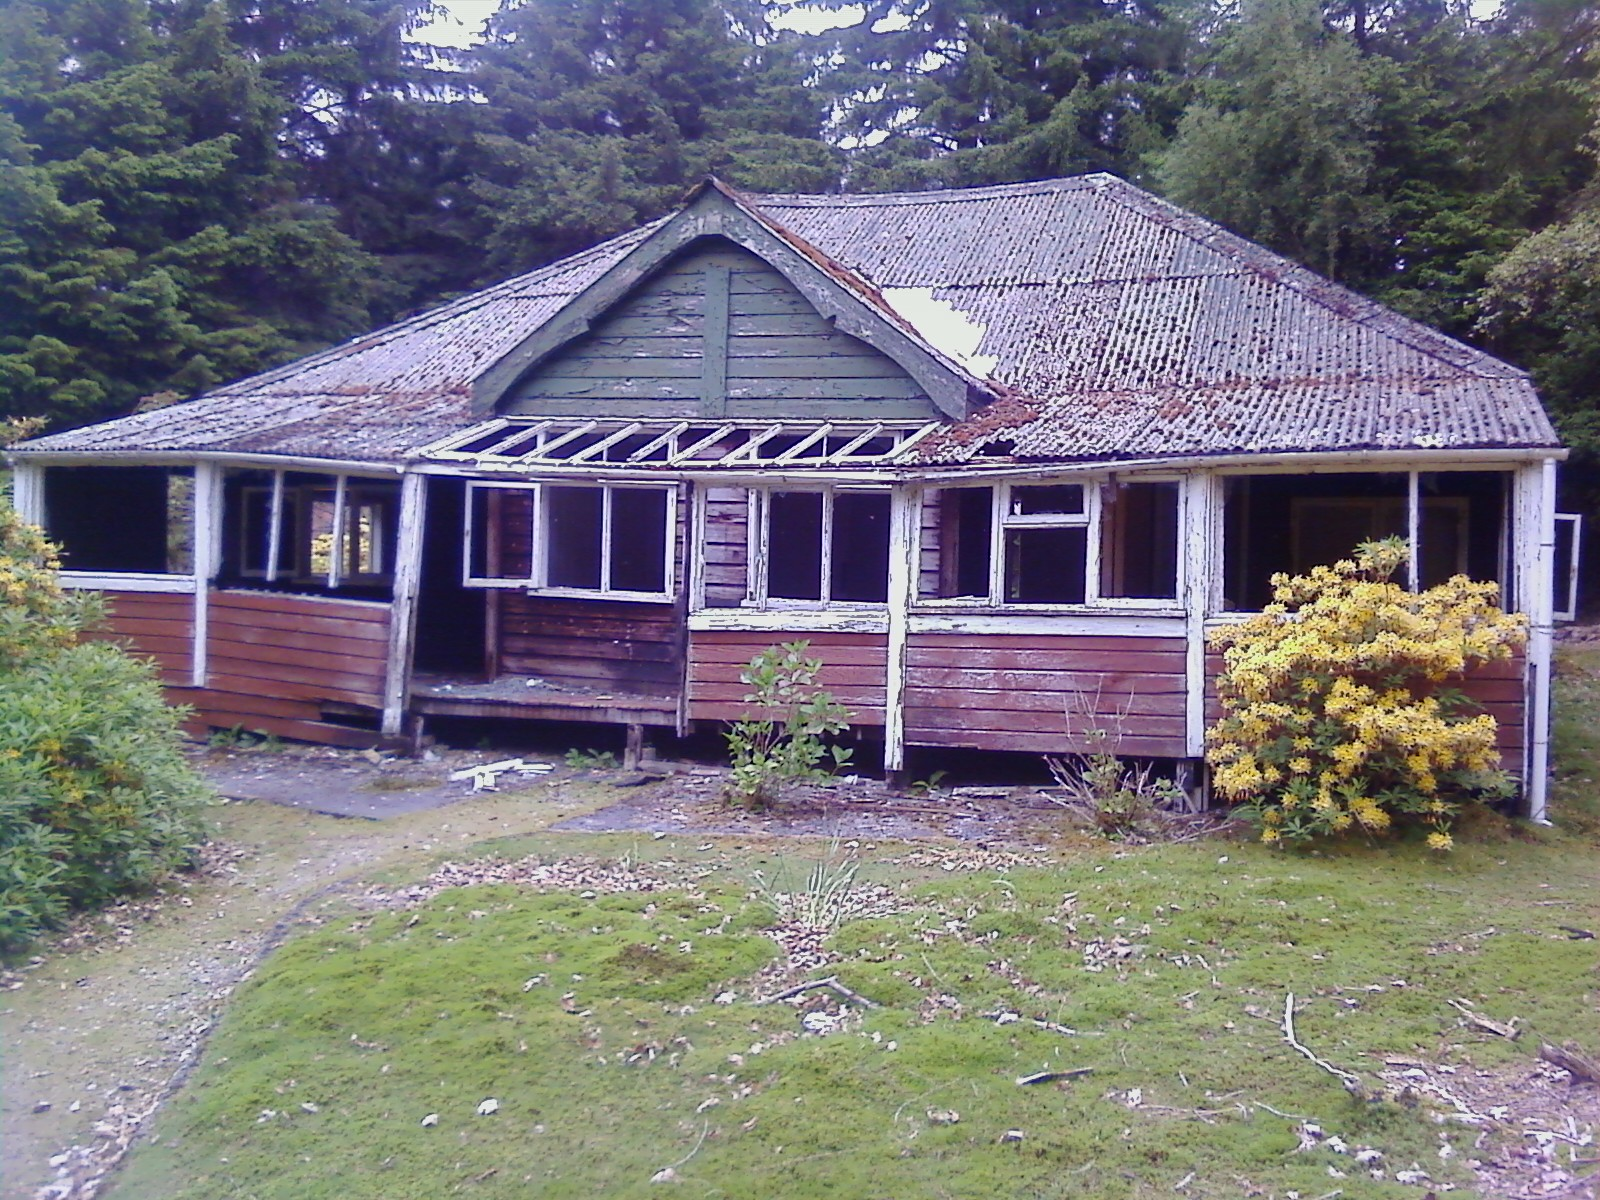 Lady Arran bungalow